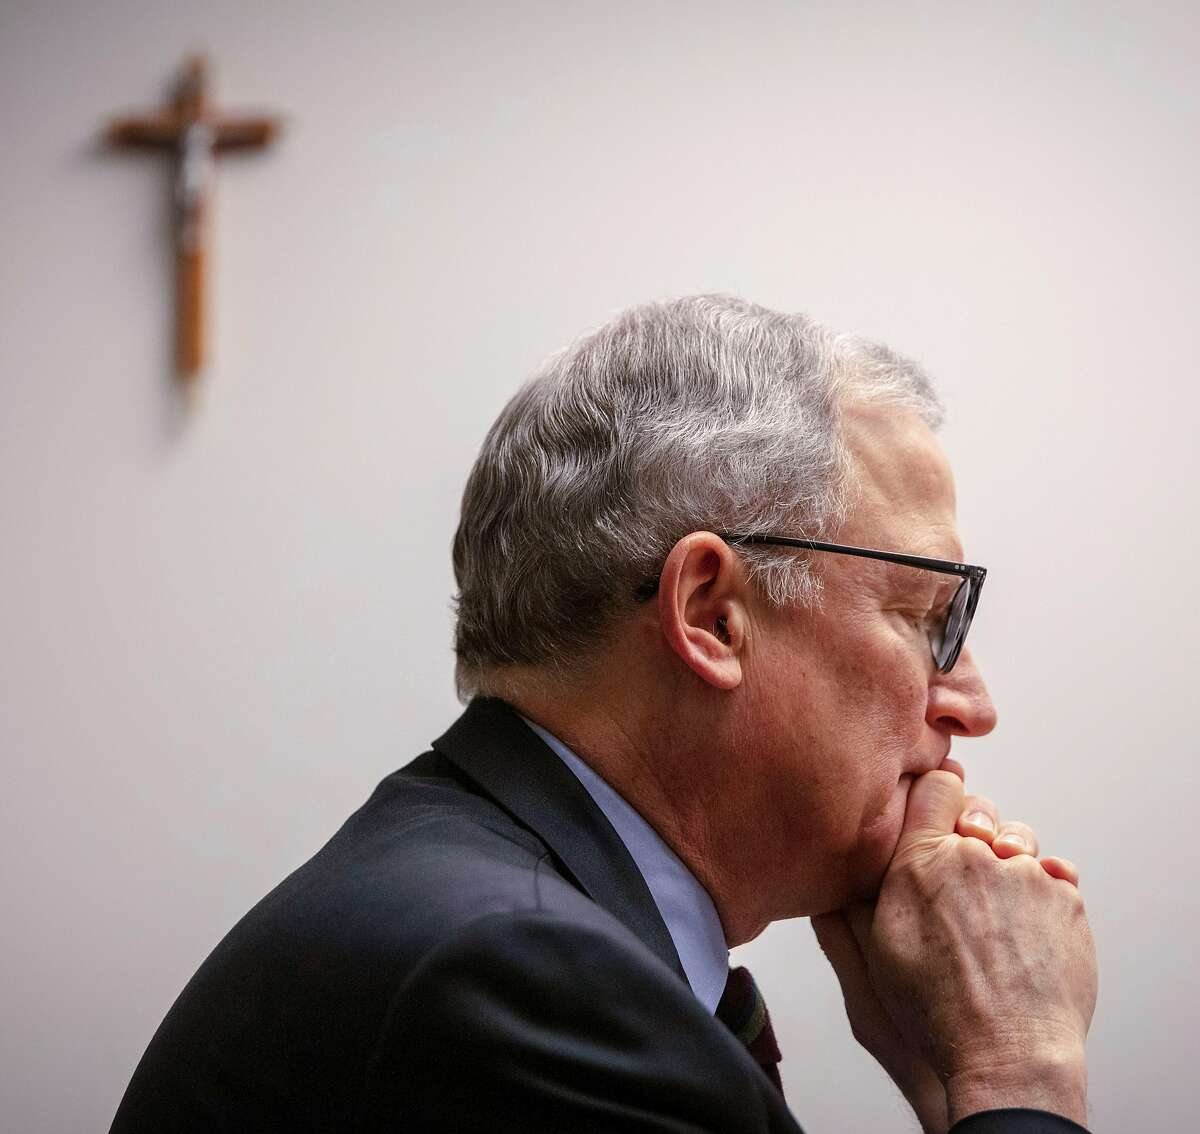 Stephan Wilcox, Chancellor of the Oakland Catholic diocese, released the names of priests, decons and religious brothers credibly accused of sexual abuse of a minor at the Oakland Catholic diocese in Oakland, California, USA 17 Feb 2019. (Peter DaSilva/Special to The Chronicle)